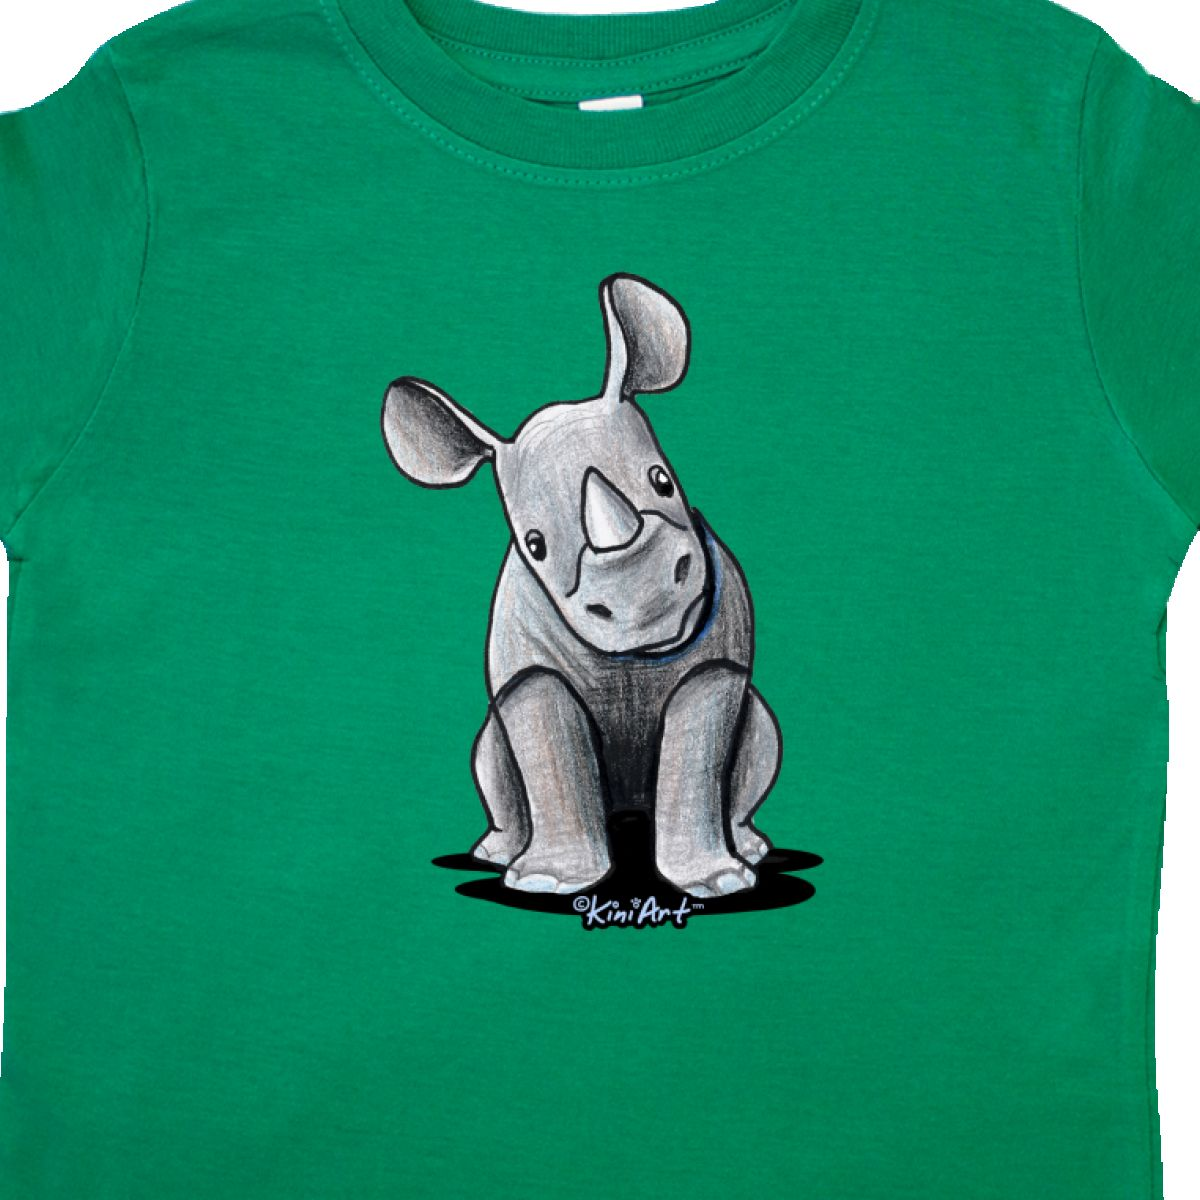 Inktastic-Curious-Rhinos-Toddler-T-Shirt-KiniArt-Rhino-Rhinoceros-Art-Cartoon thumbnail 16